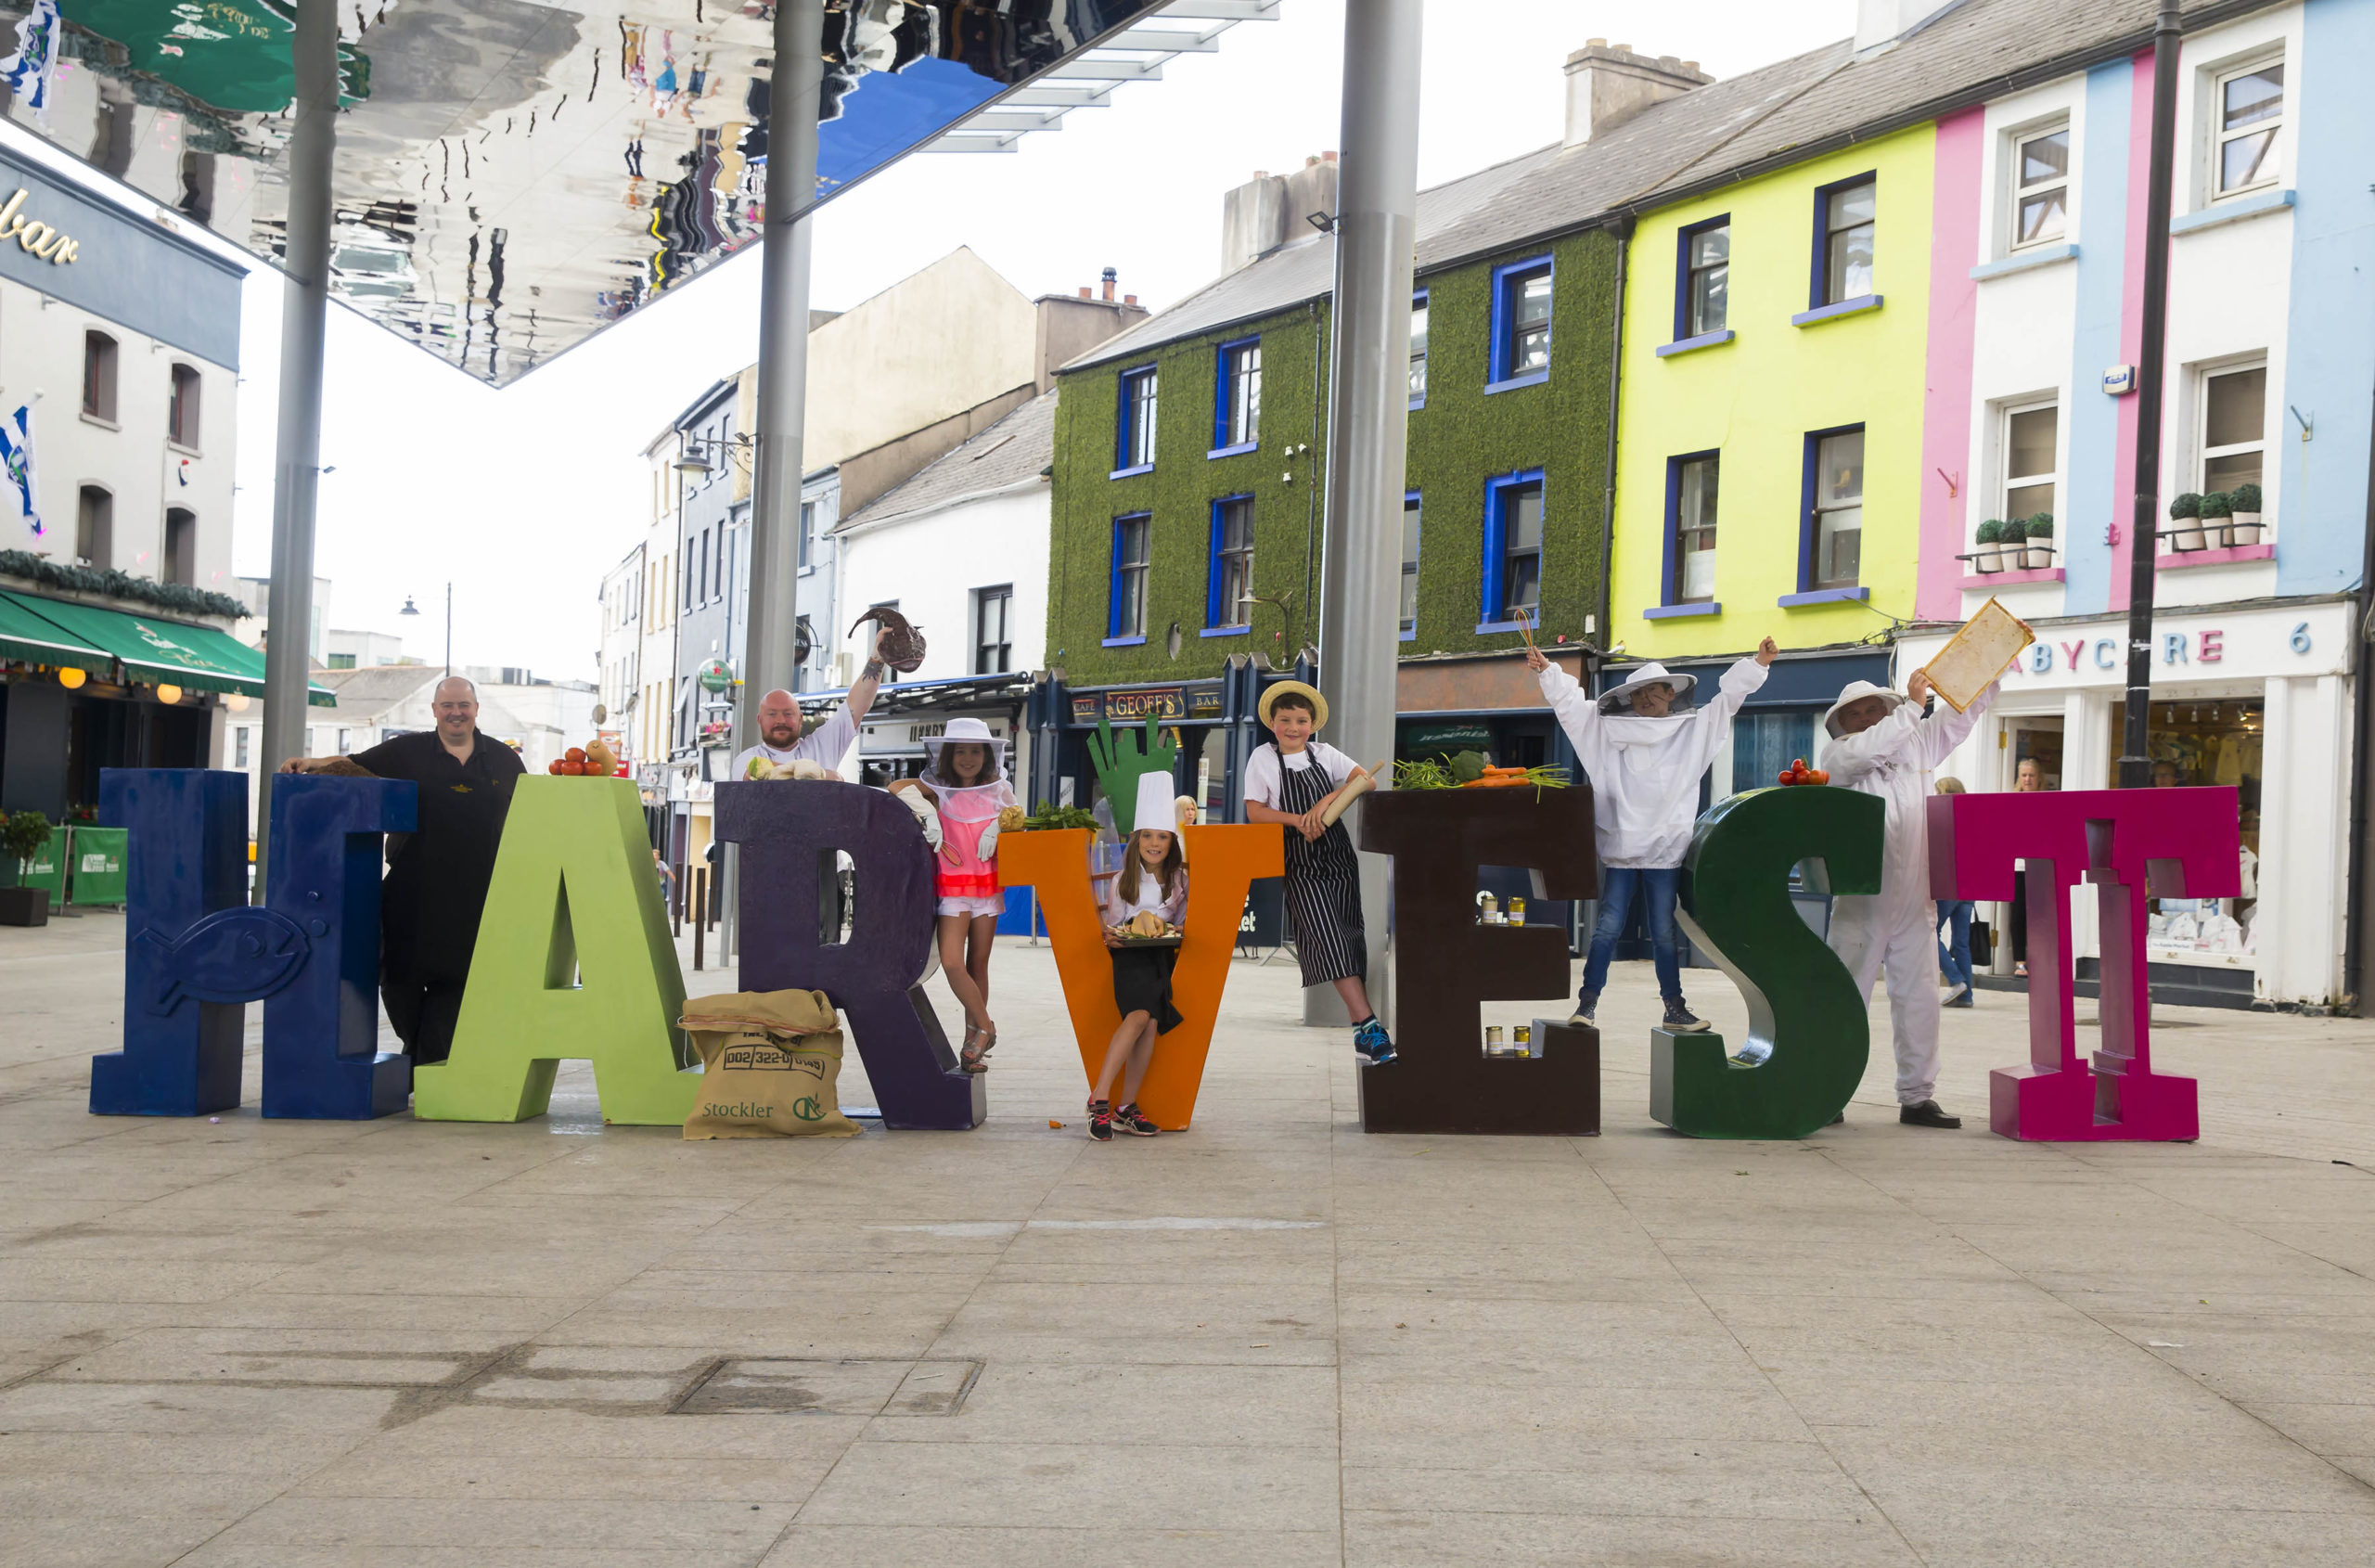 Waterford Harvest Festival has something to suit all tastes buds